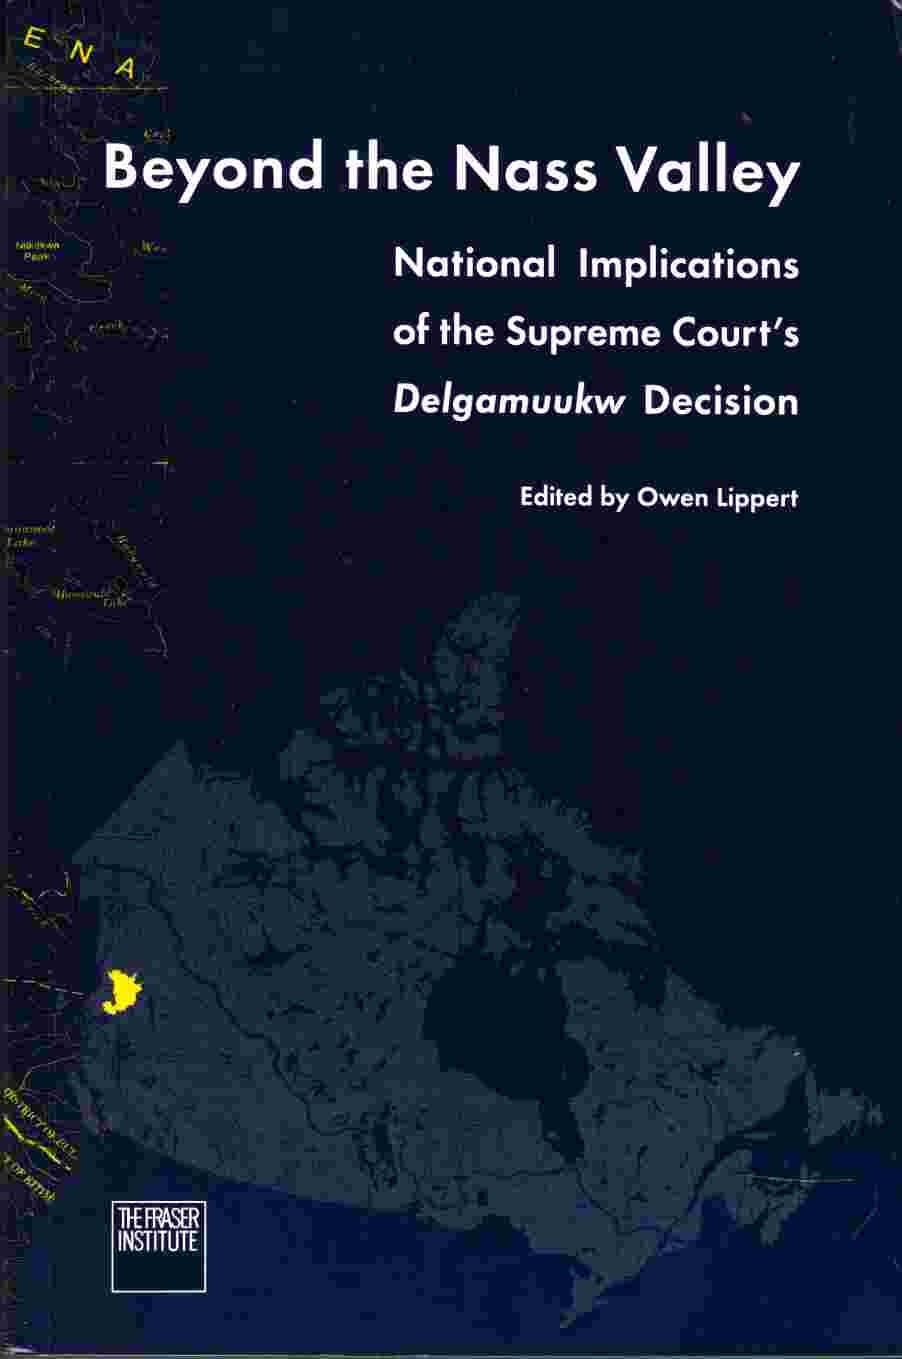 Image for Beyond the Nass Valley National Implications of the Supreme Court's Delgamuukw Decision